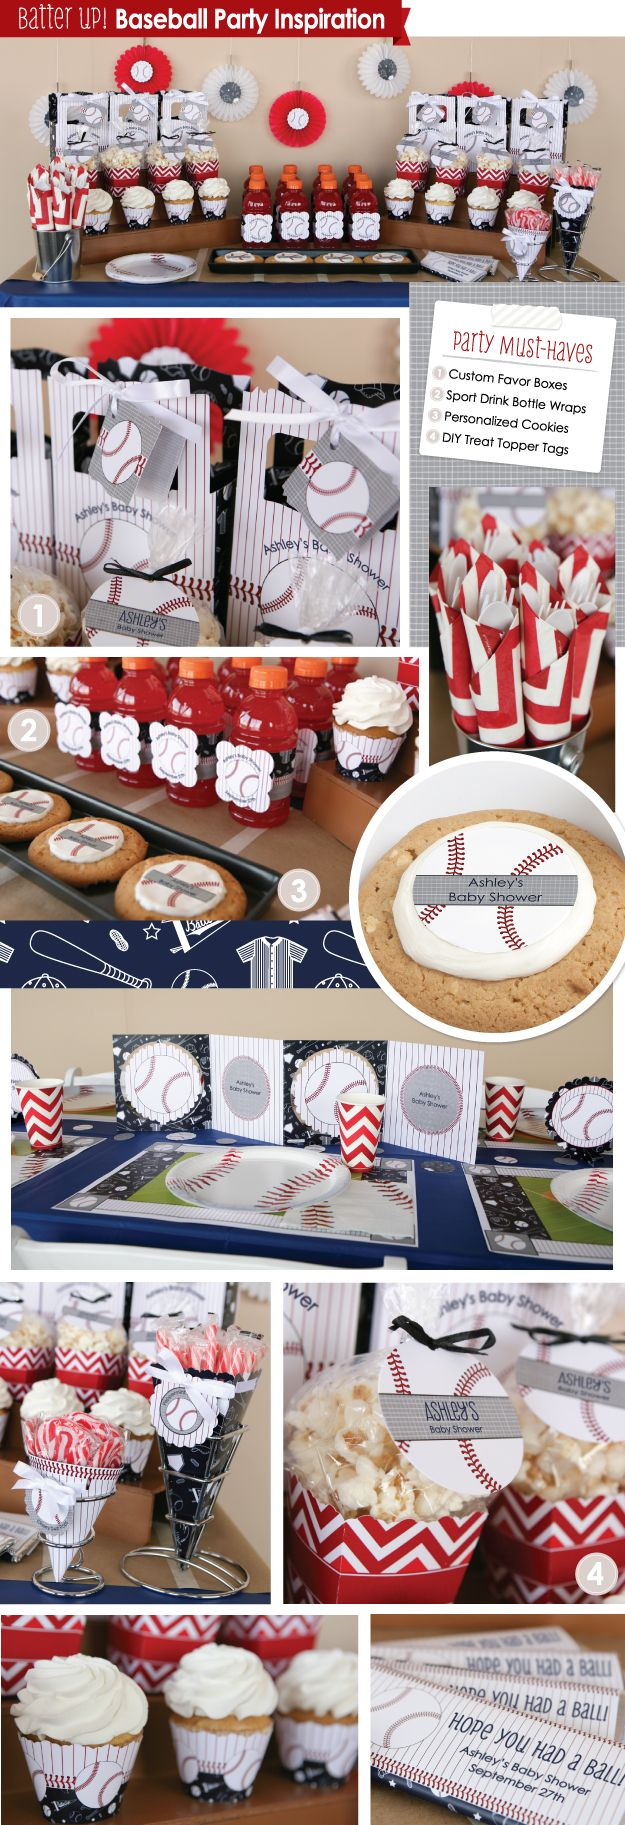 best 25+ baseball party supplies ideas on pinterest | baseball